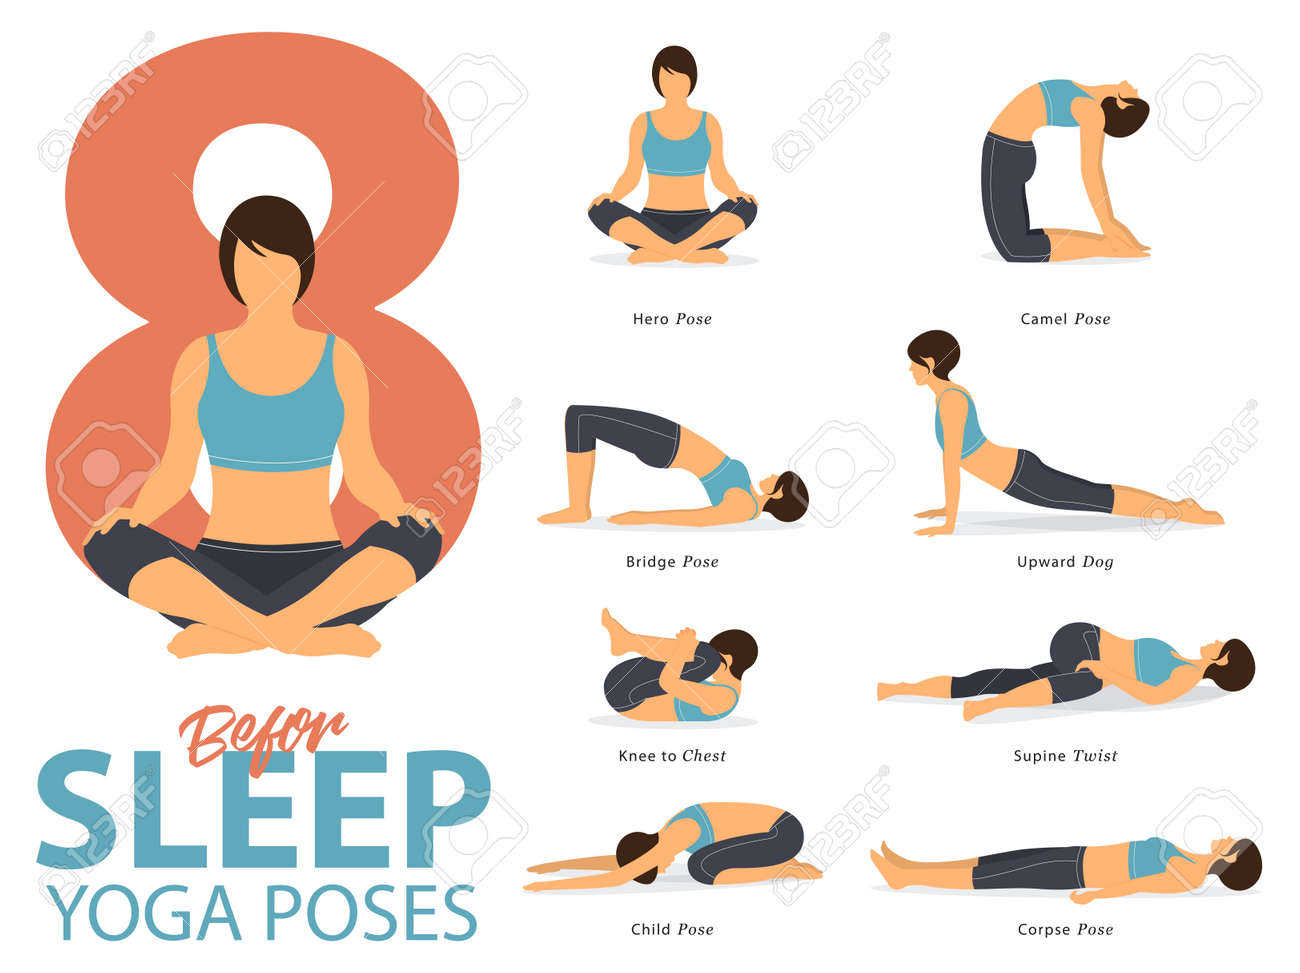 A set of yoga postures female figures for Infographic 8 Yoga poses for exercise before sleep in flat design. Vector Illustration. - 88069584